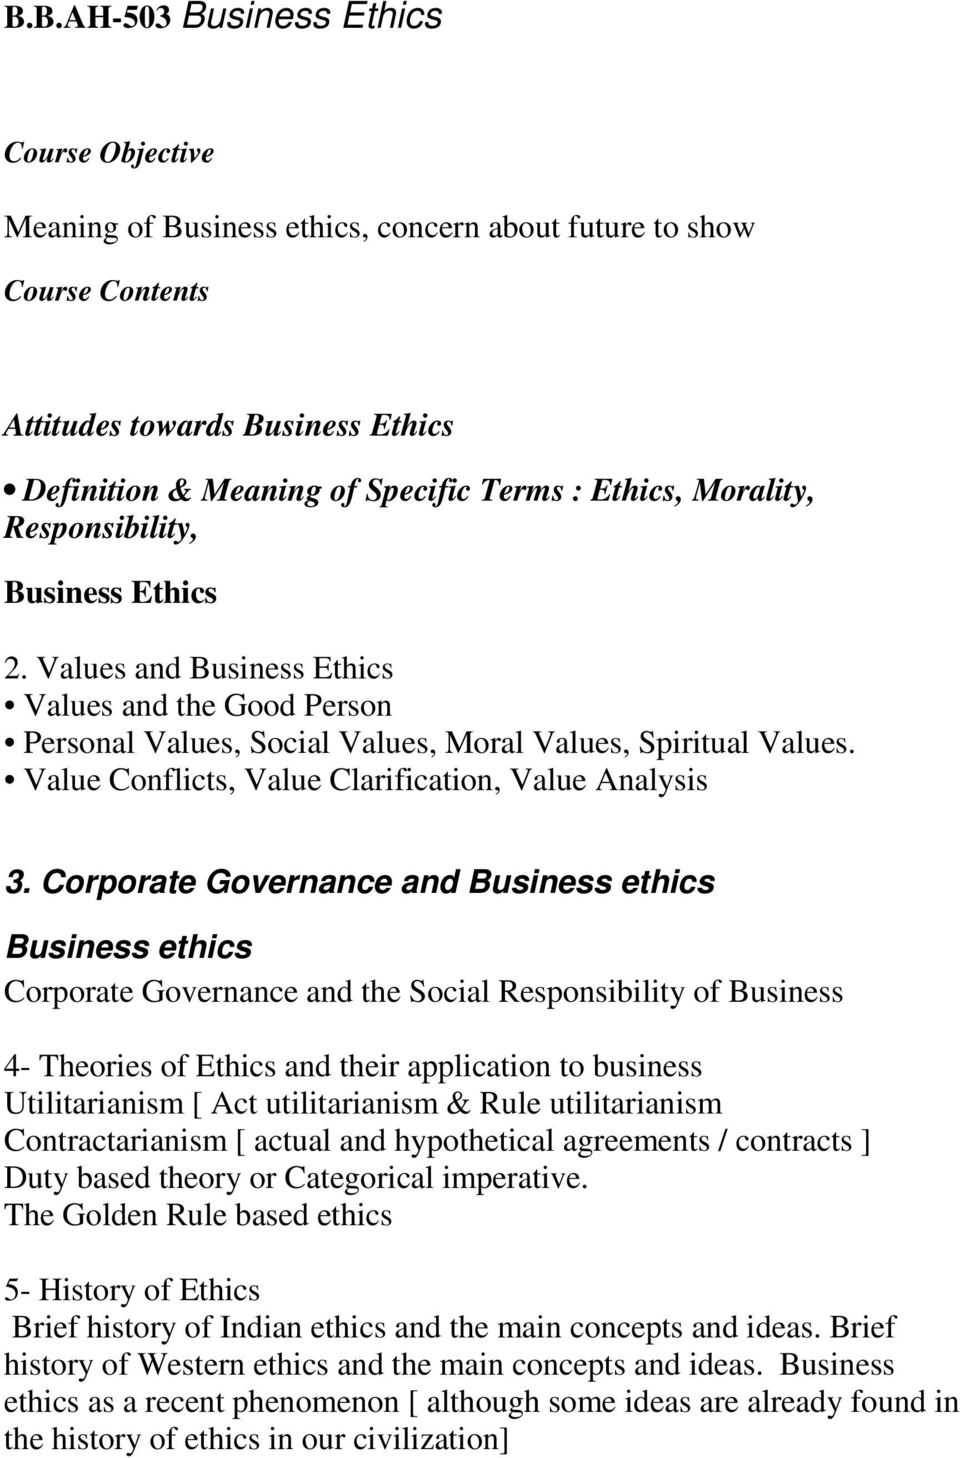 Corporate Governance and Business ethics Business ethics Corporate Governance and the Social Responsibility of Business 4- Theories of Ethics and their application to business Utilitarianism [ Act